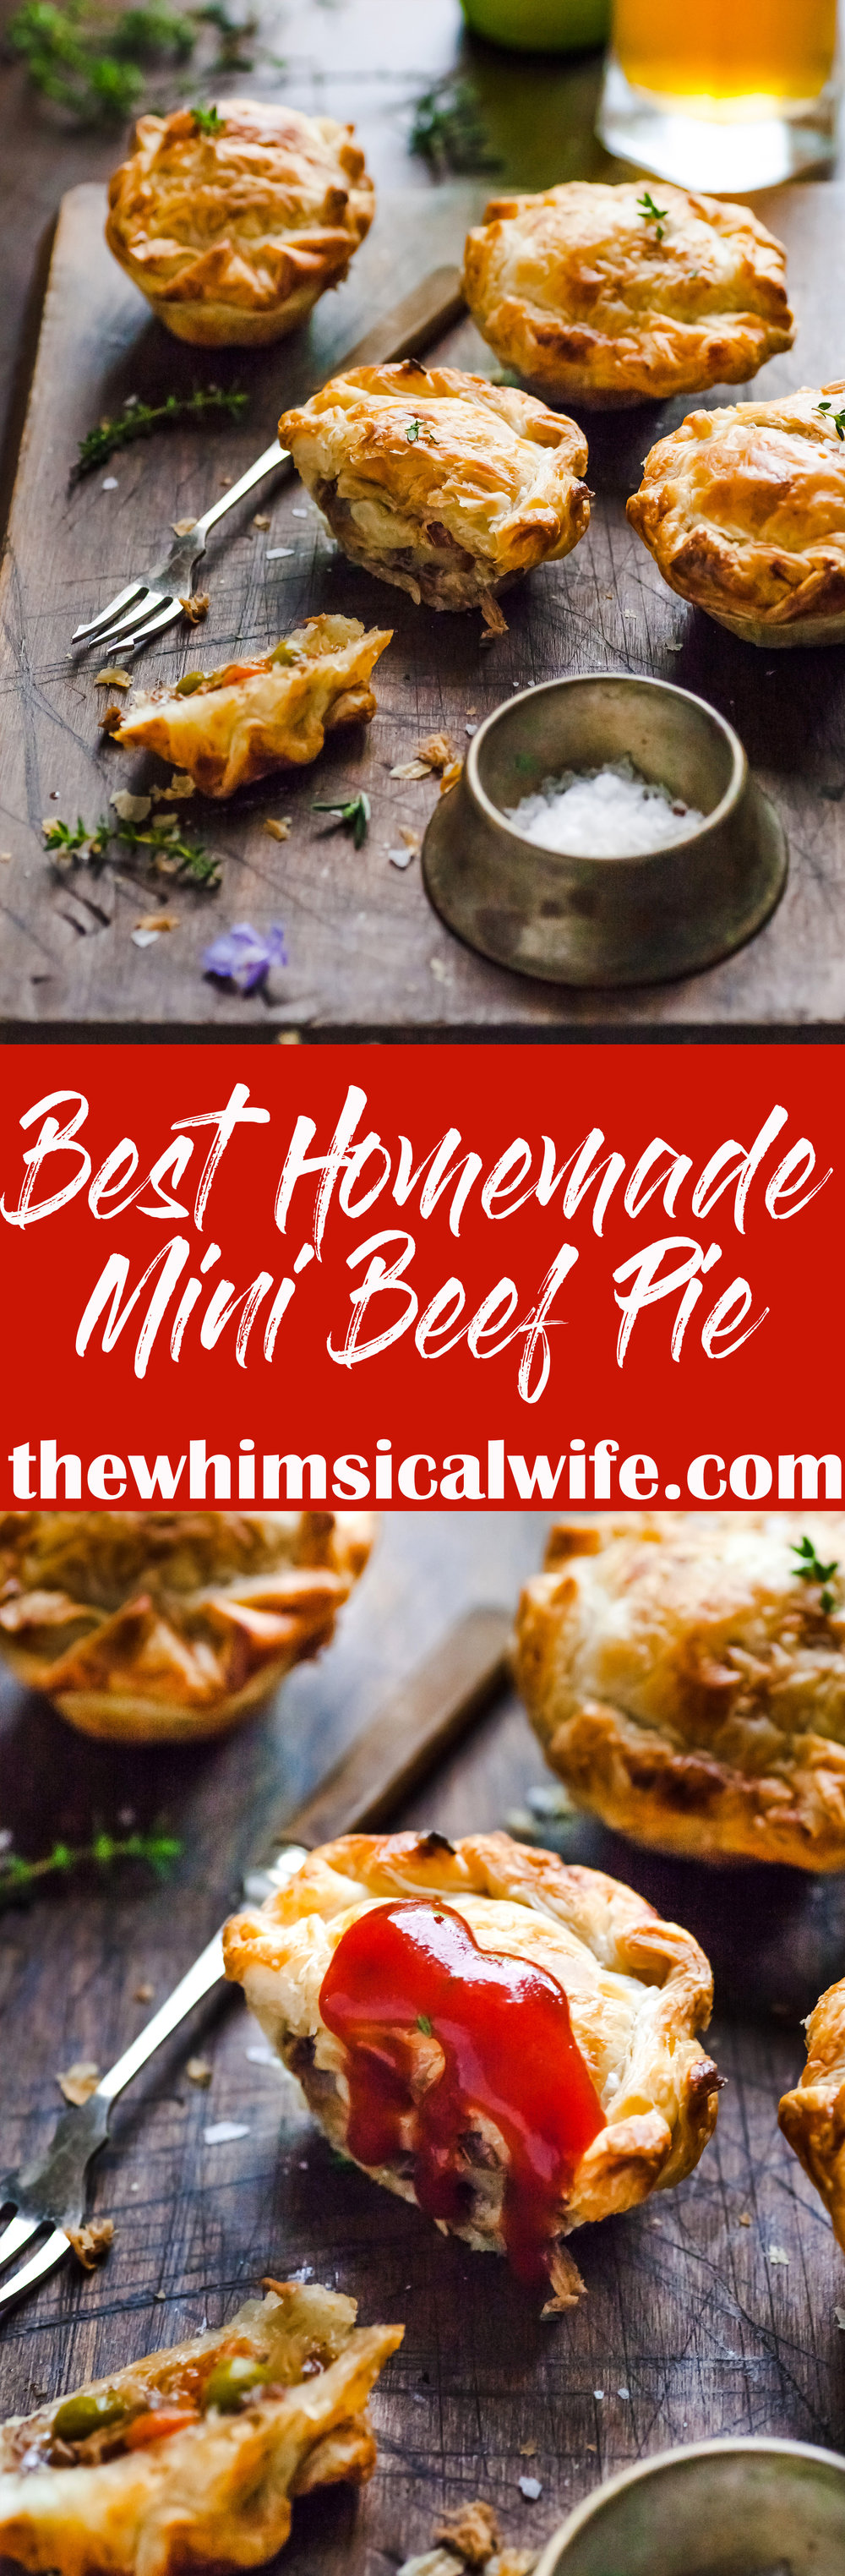 Best Homemade Mini Meat Pie + Video | The Whimsical Wife